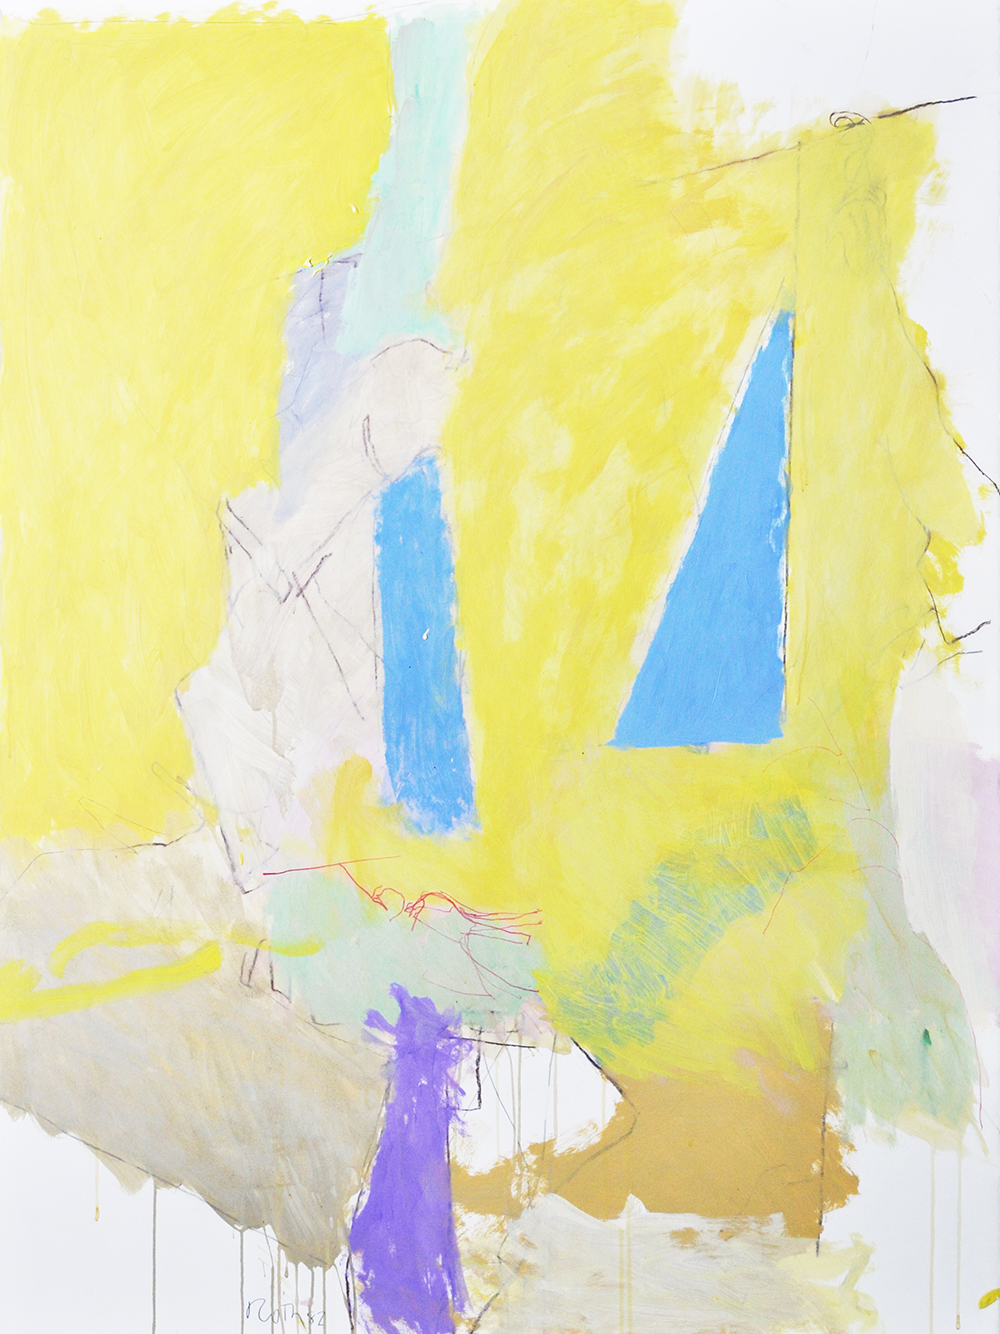 #499 Untitled,   Acrylic on paper, 1982, 50 x 38 1/2 inches